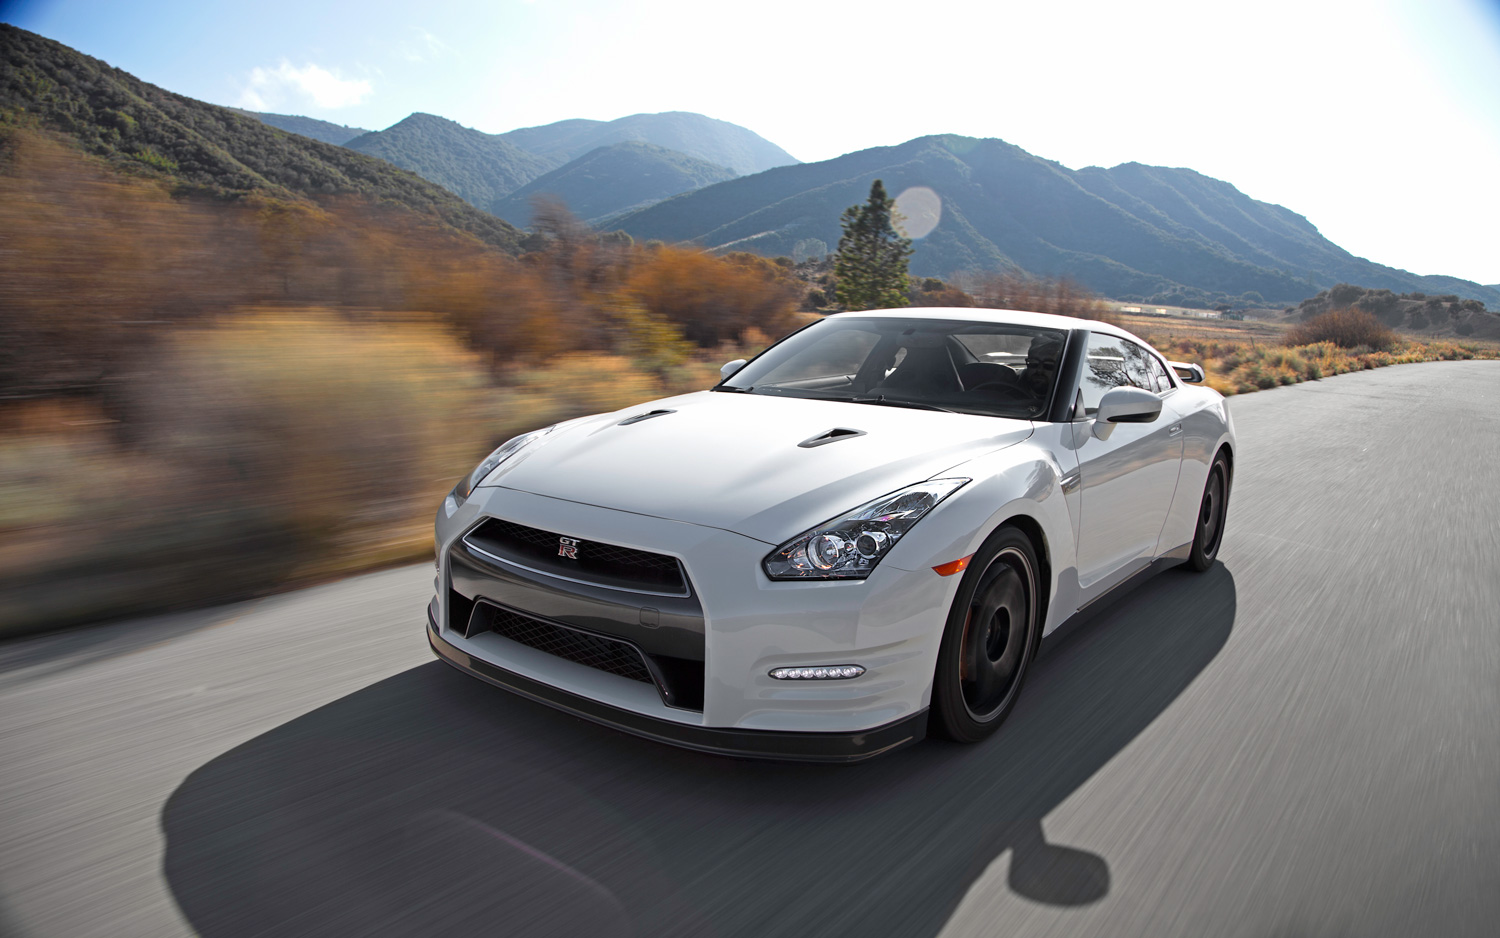 2013 Nissan Gtr Black Edition Supercar Original